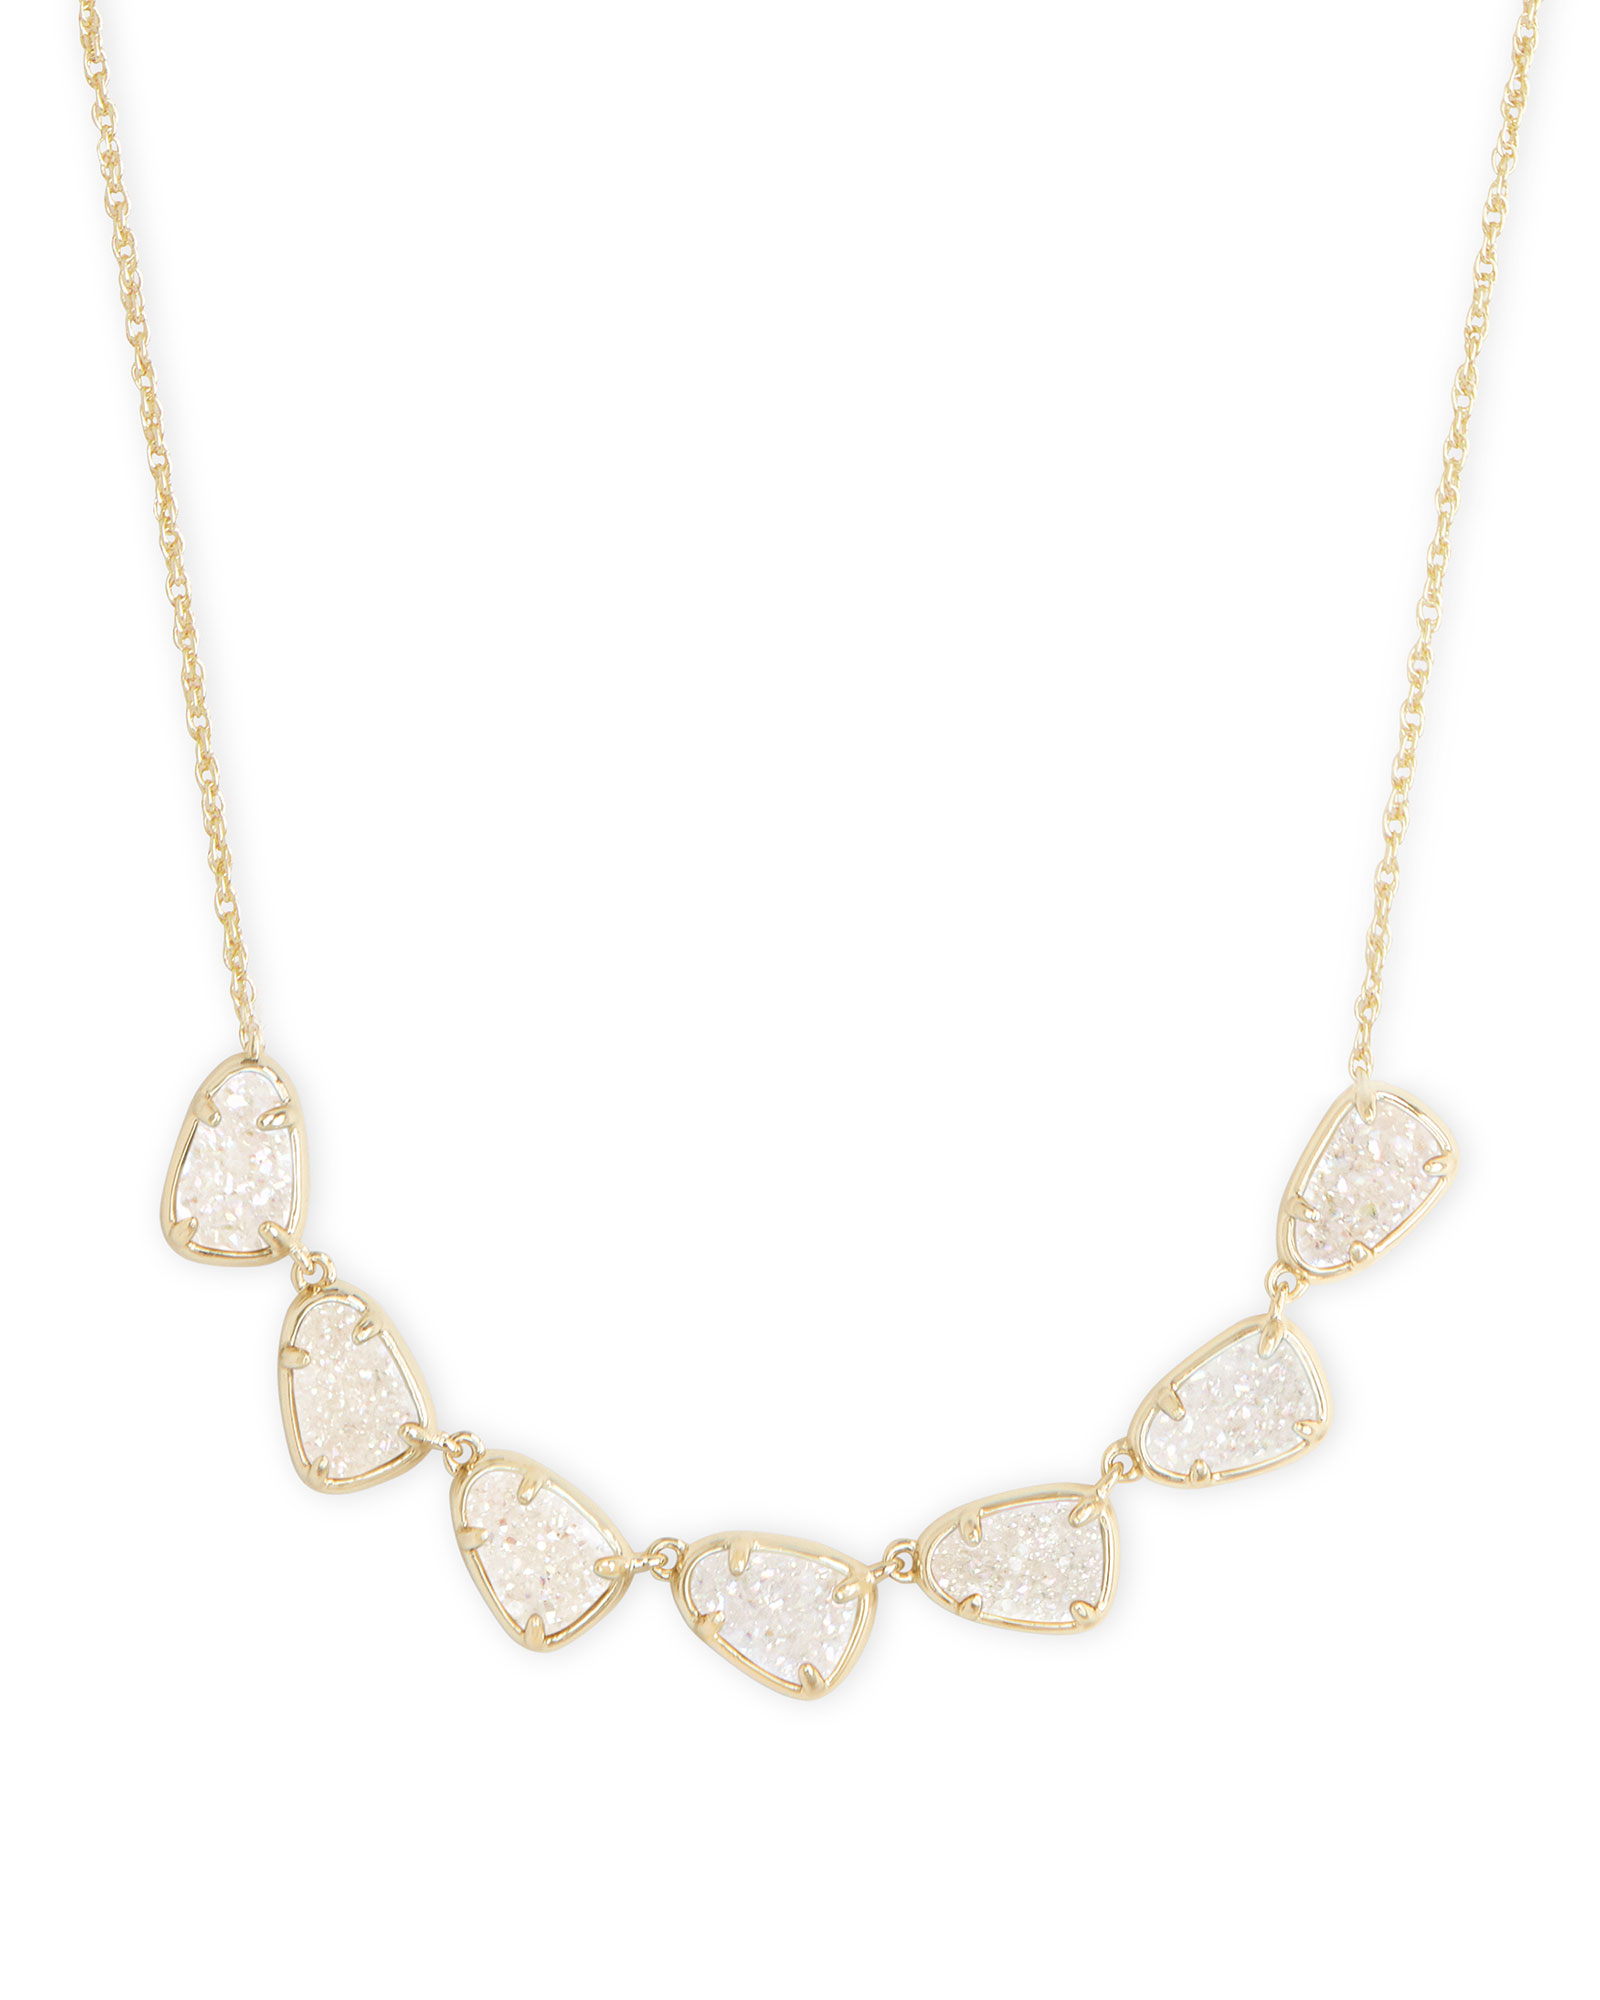 Susanna Gold Collar Necklace in Iridescent Drusy